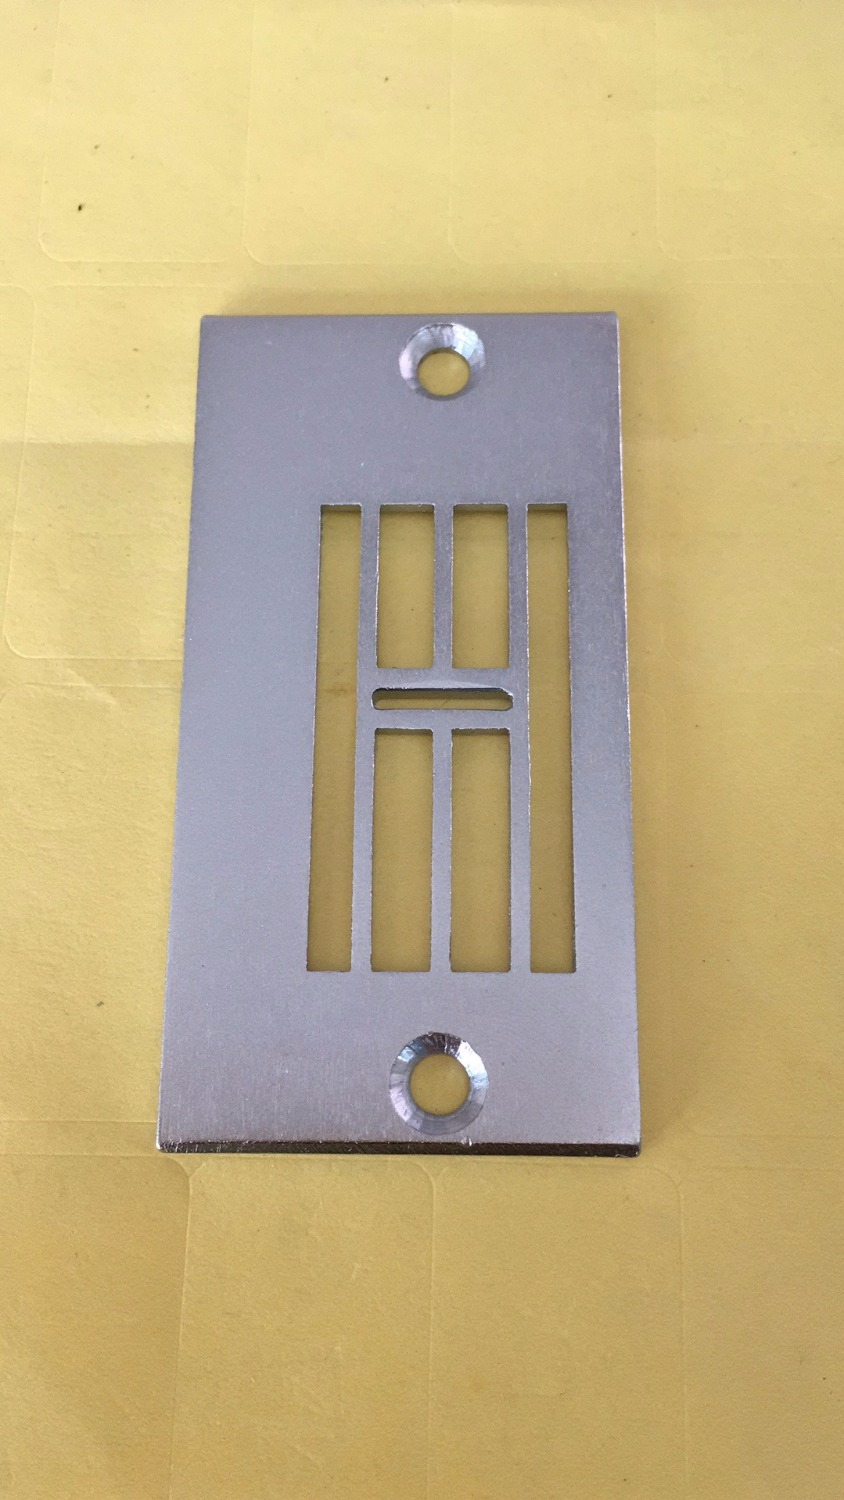 For singer S457 sewing machine tooth and needle plate ,number is 411308 and 503682